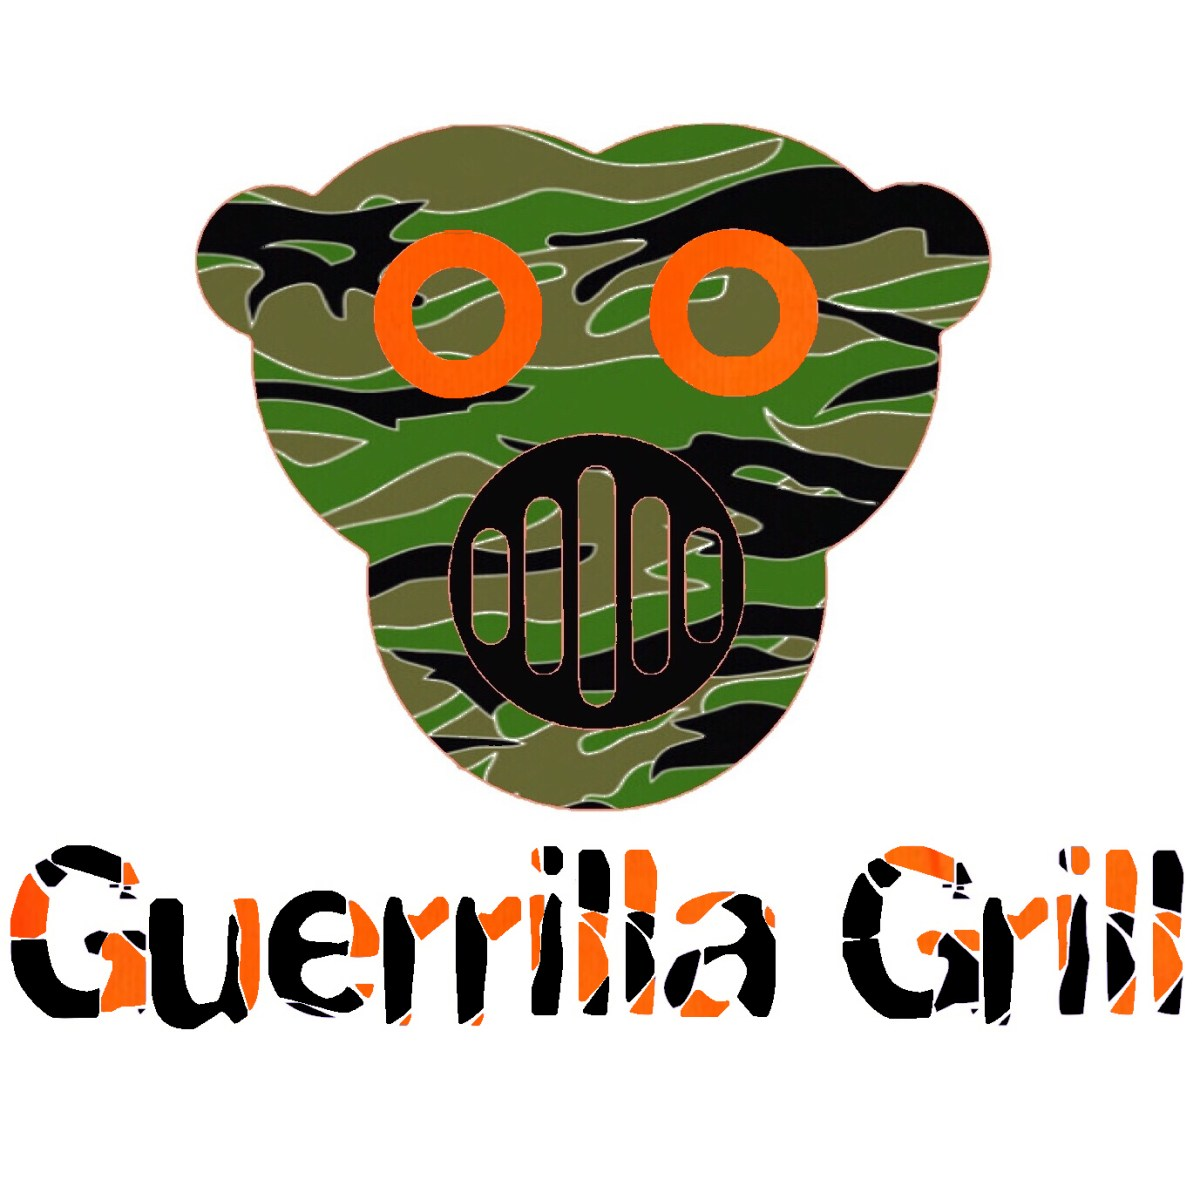 Here is The gUERRILLA gRILL dENVER Vlog.